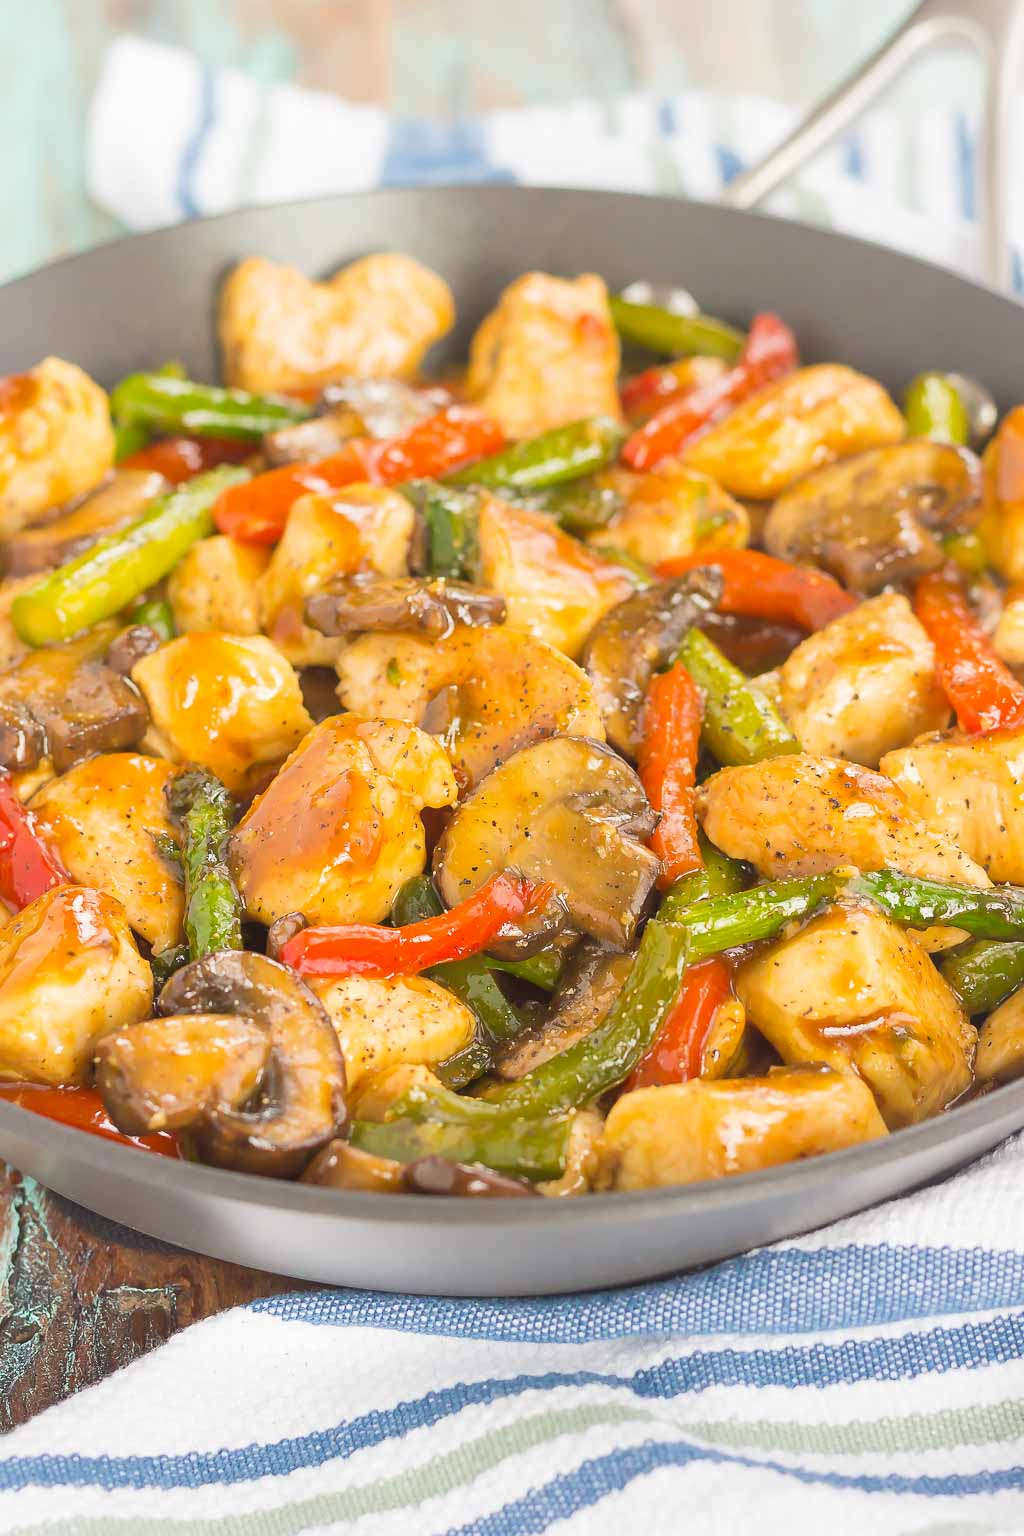 This Honey Garlic Chicken Stir-Fry is an easy, one pan meal that's ready in just 30 minutes. Fresh veggies and chicken are tossed in a sweet and savory sauce that's seasoned to perfection. This simple meal is a dish that the whole family will enjoy!